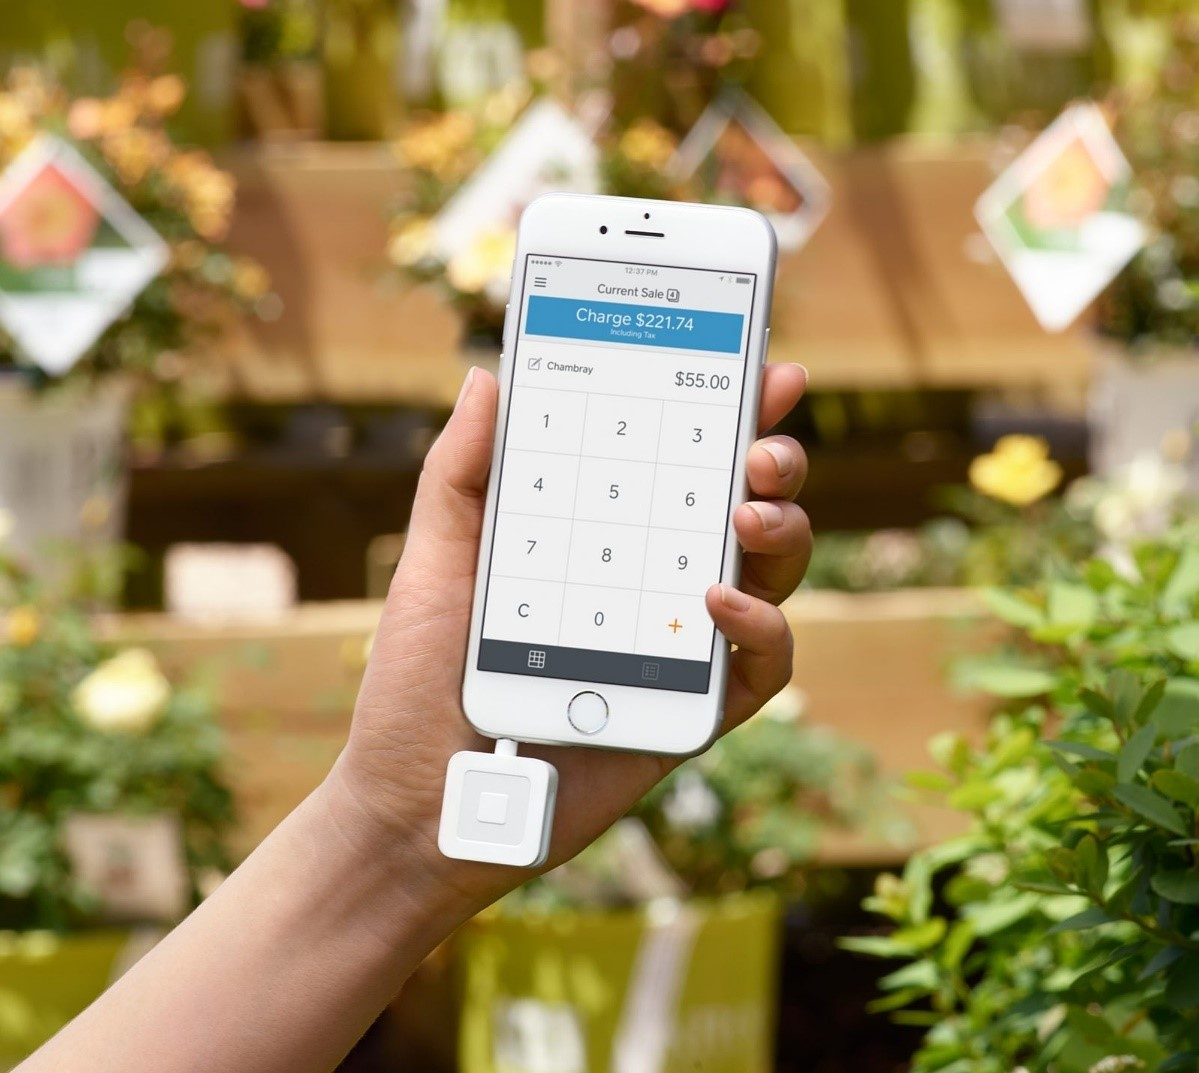 The Success Story Of Square How They Had Reimagined Payments-Fig 8